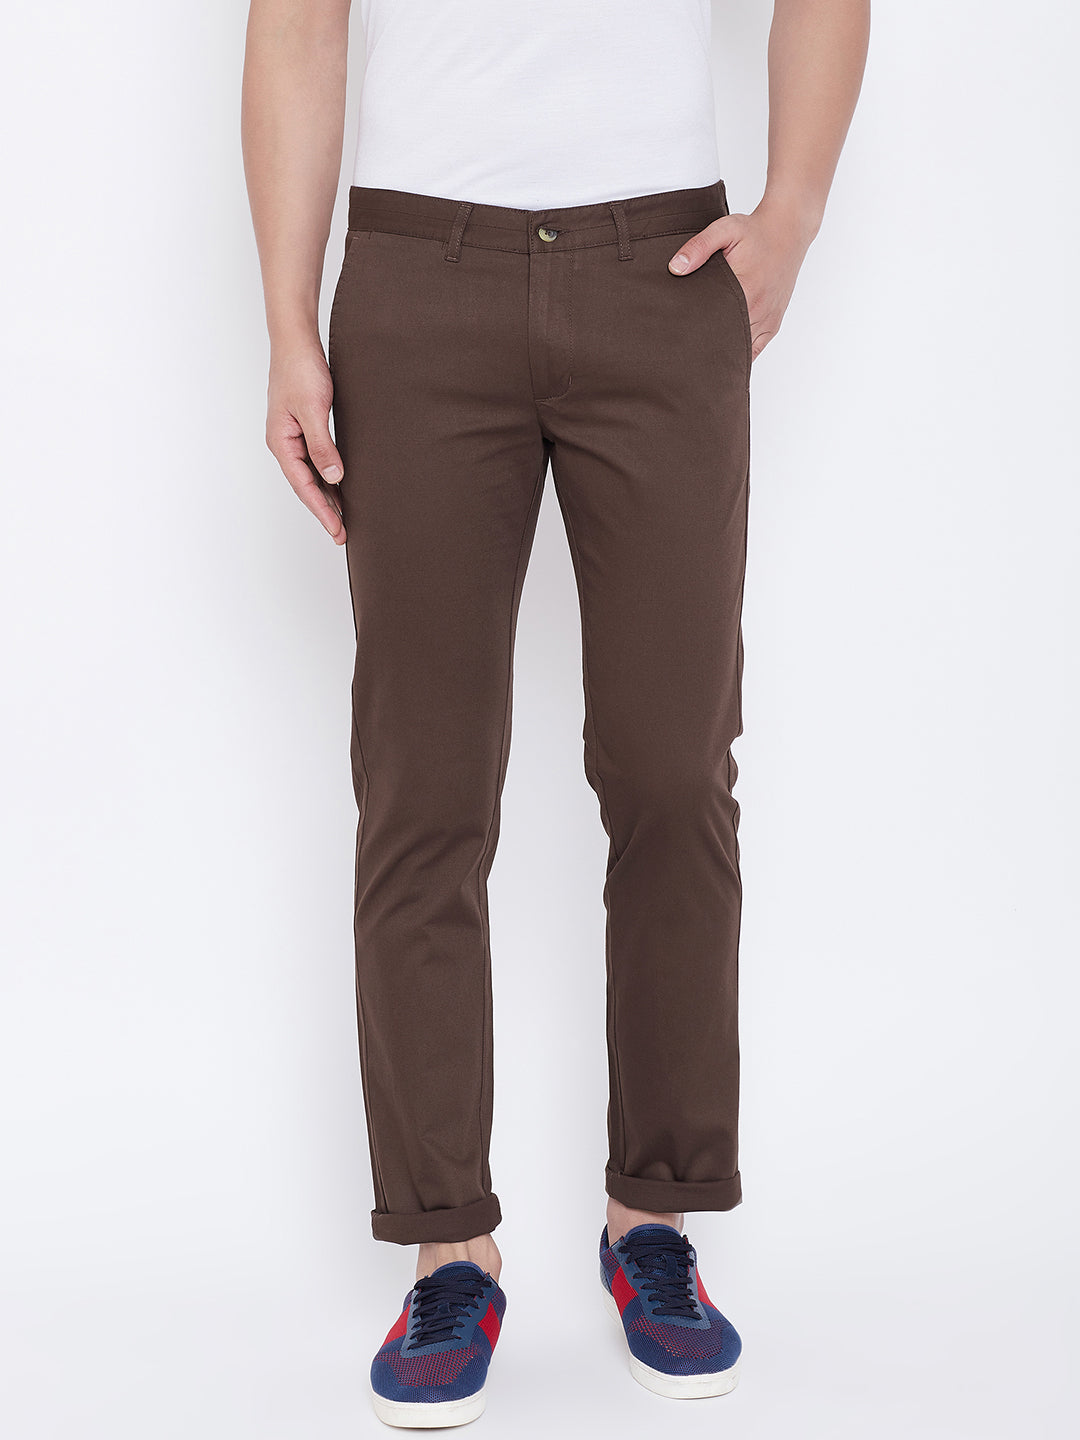 JUMP USA Men Coffee Regular Fit Solid Trousers - JUMP USA